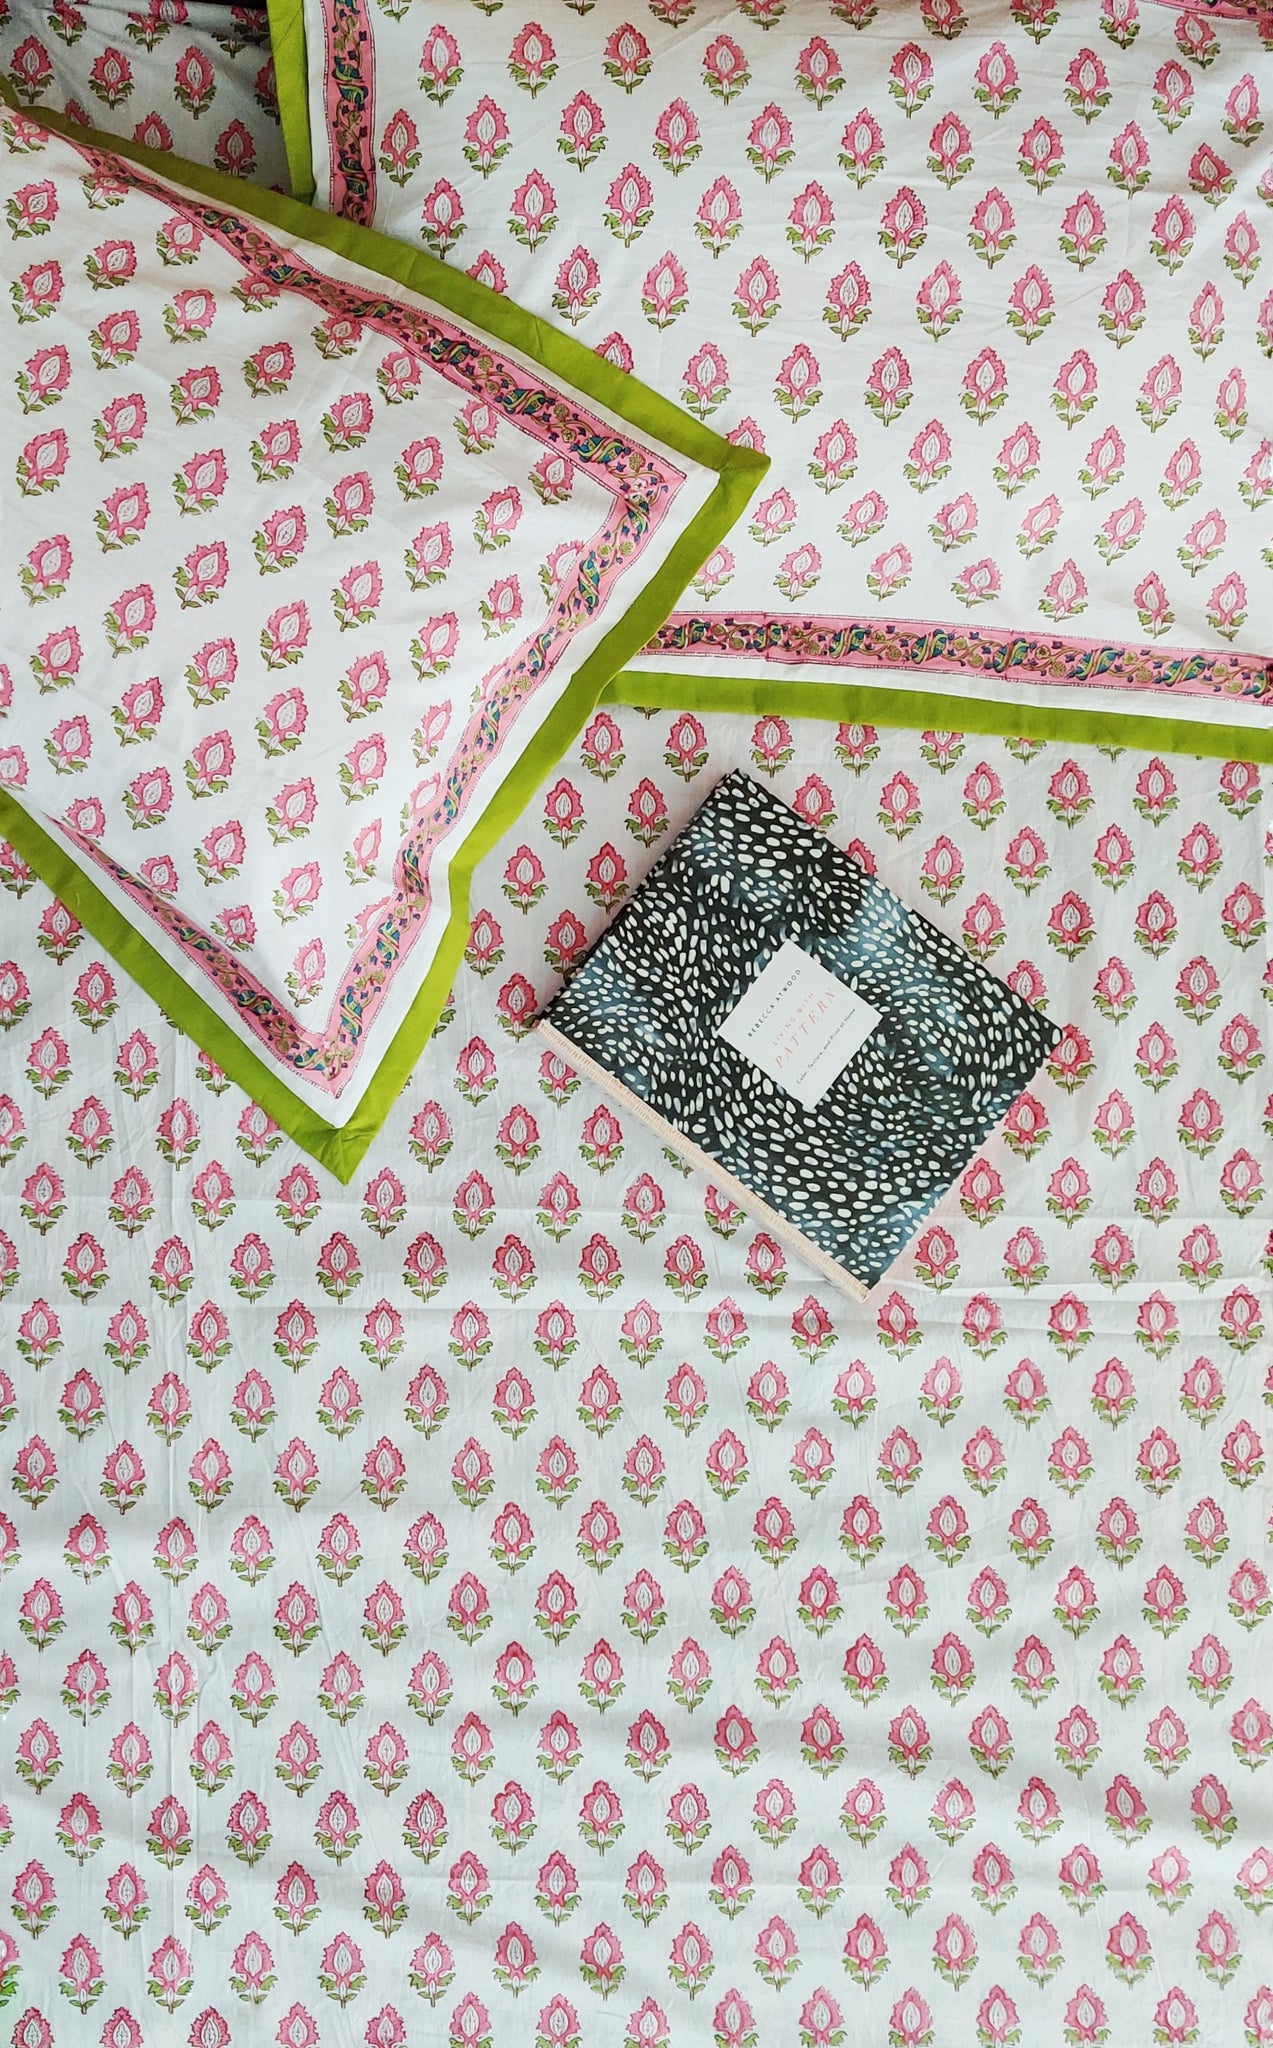 Block print bed sheet and pillow cases - Boho pink and green bedsheet set- Double bed size - 108x108 inches - King bedsheet